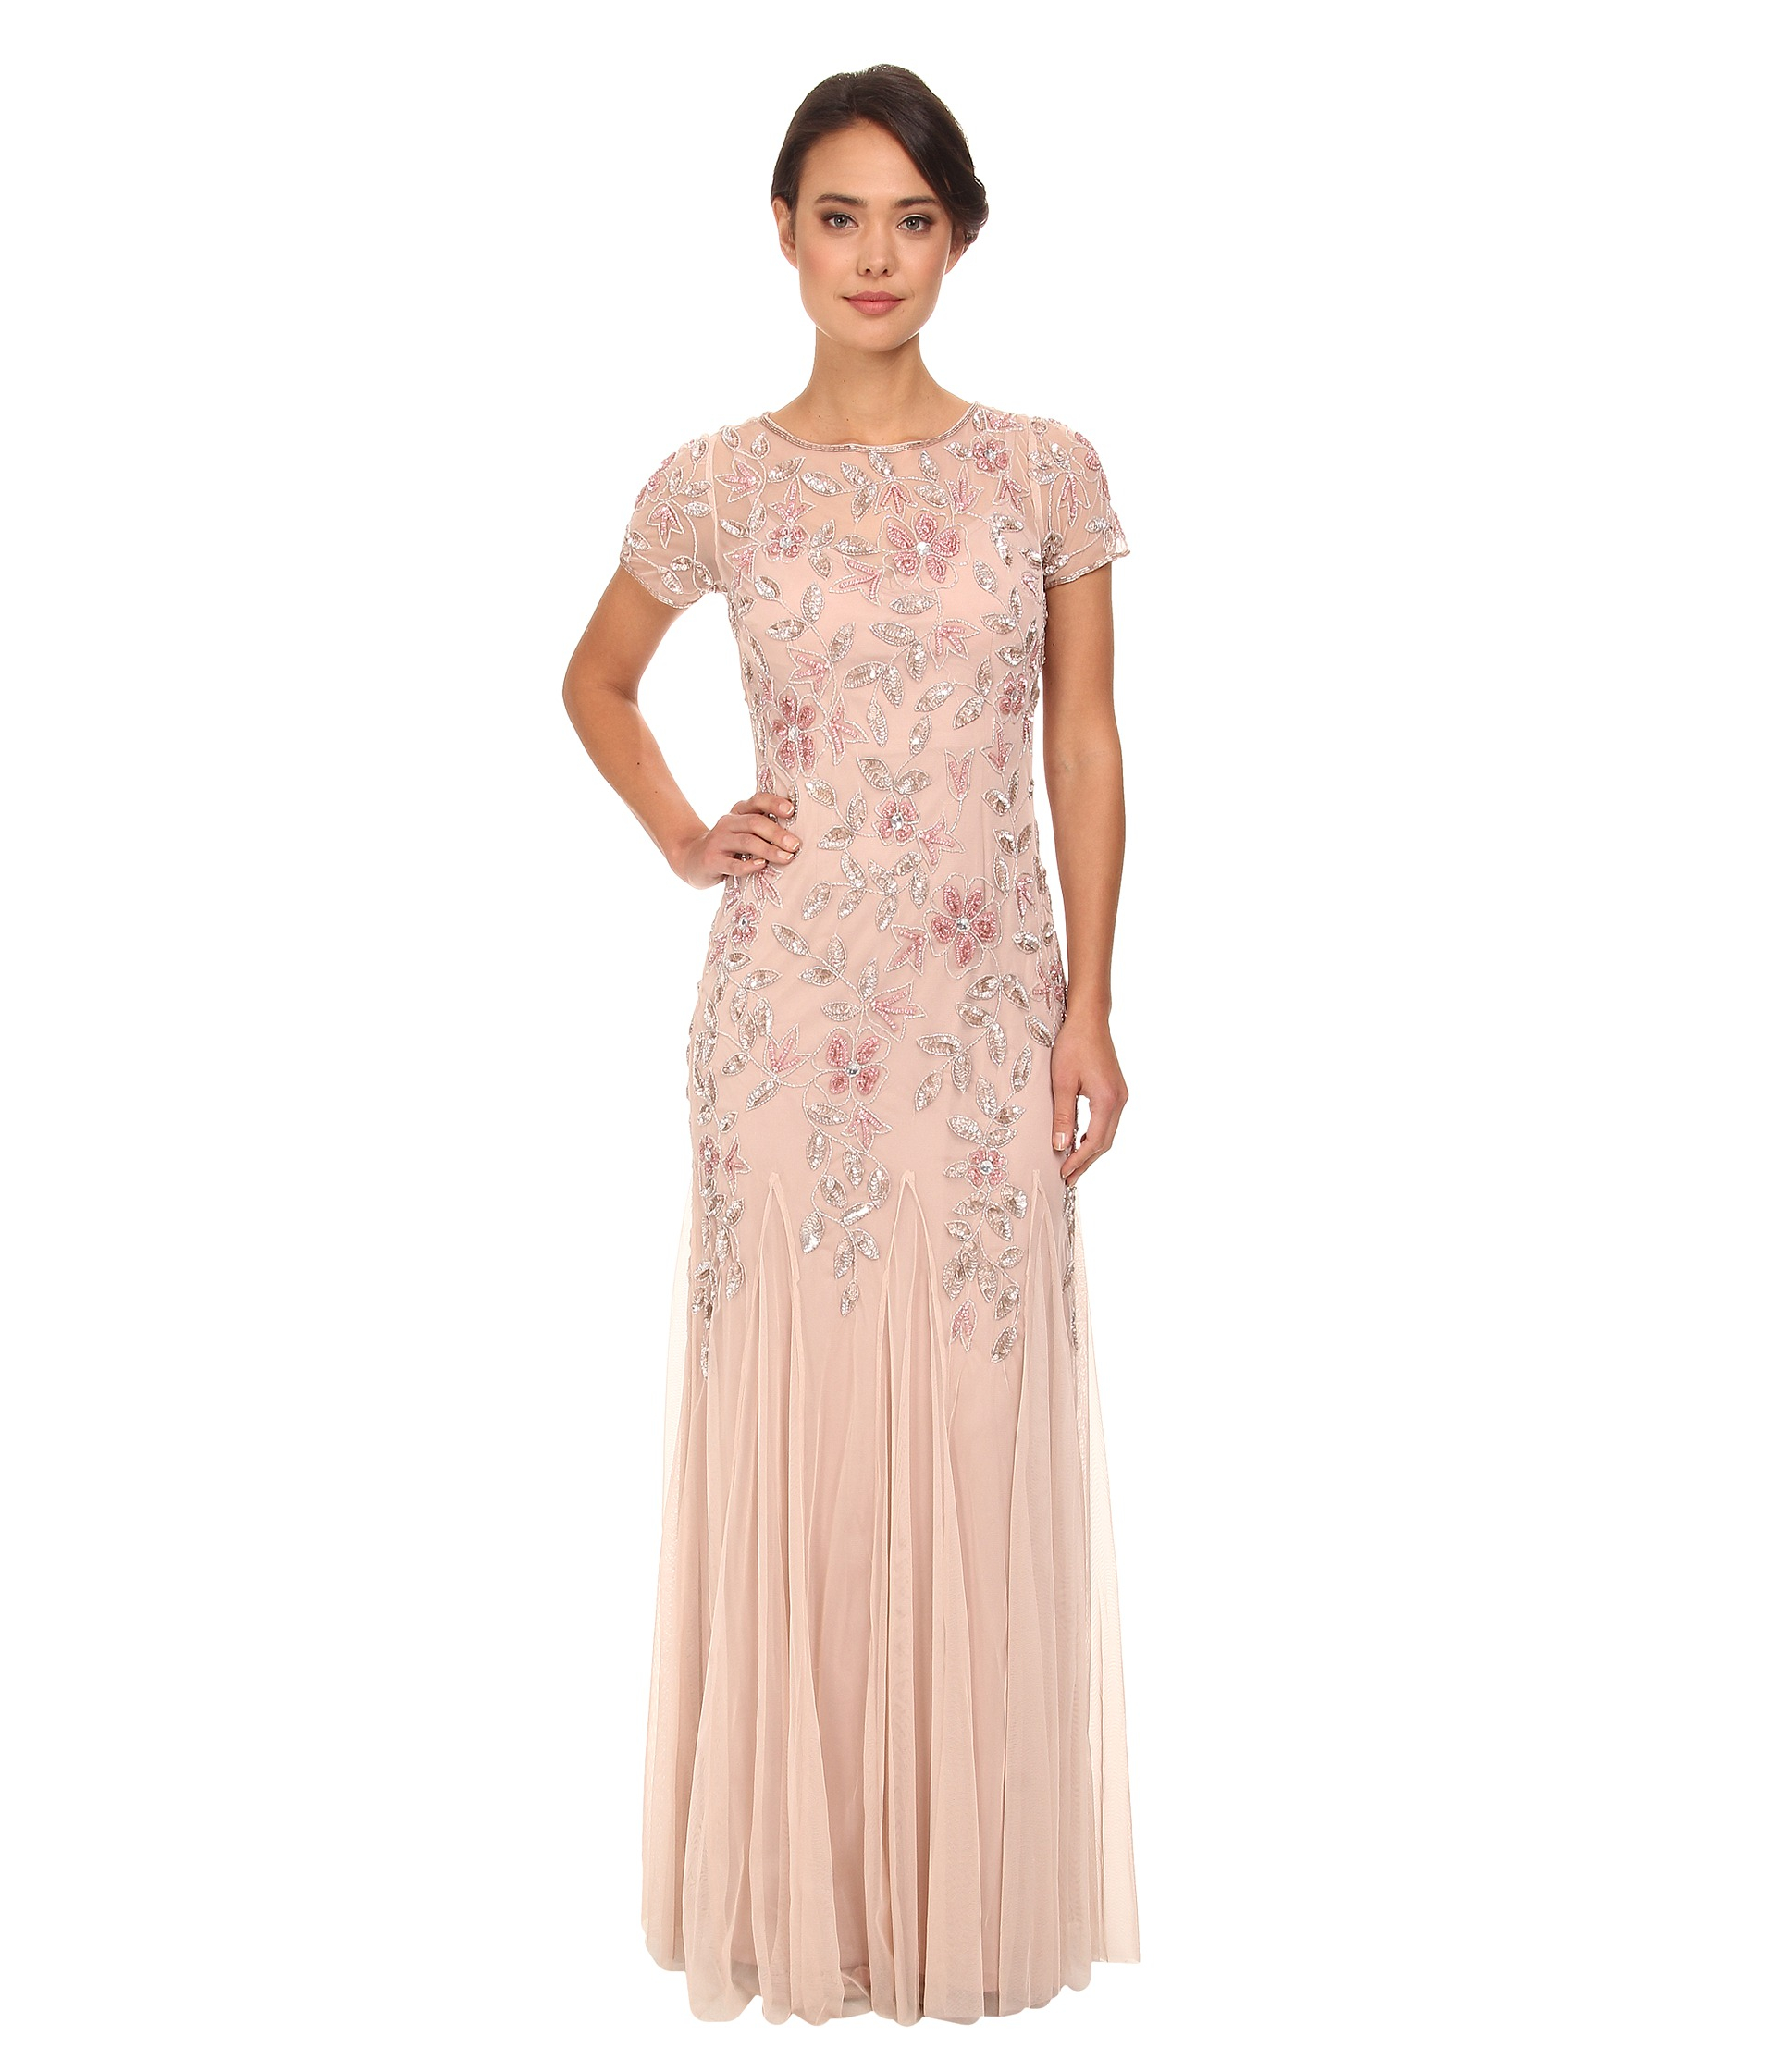 Adrianna Papell Womens Floral Beaded Godet Gown  eBay